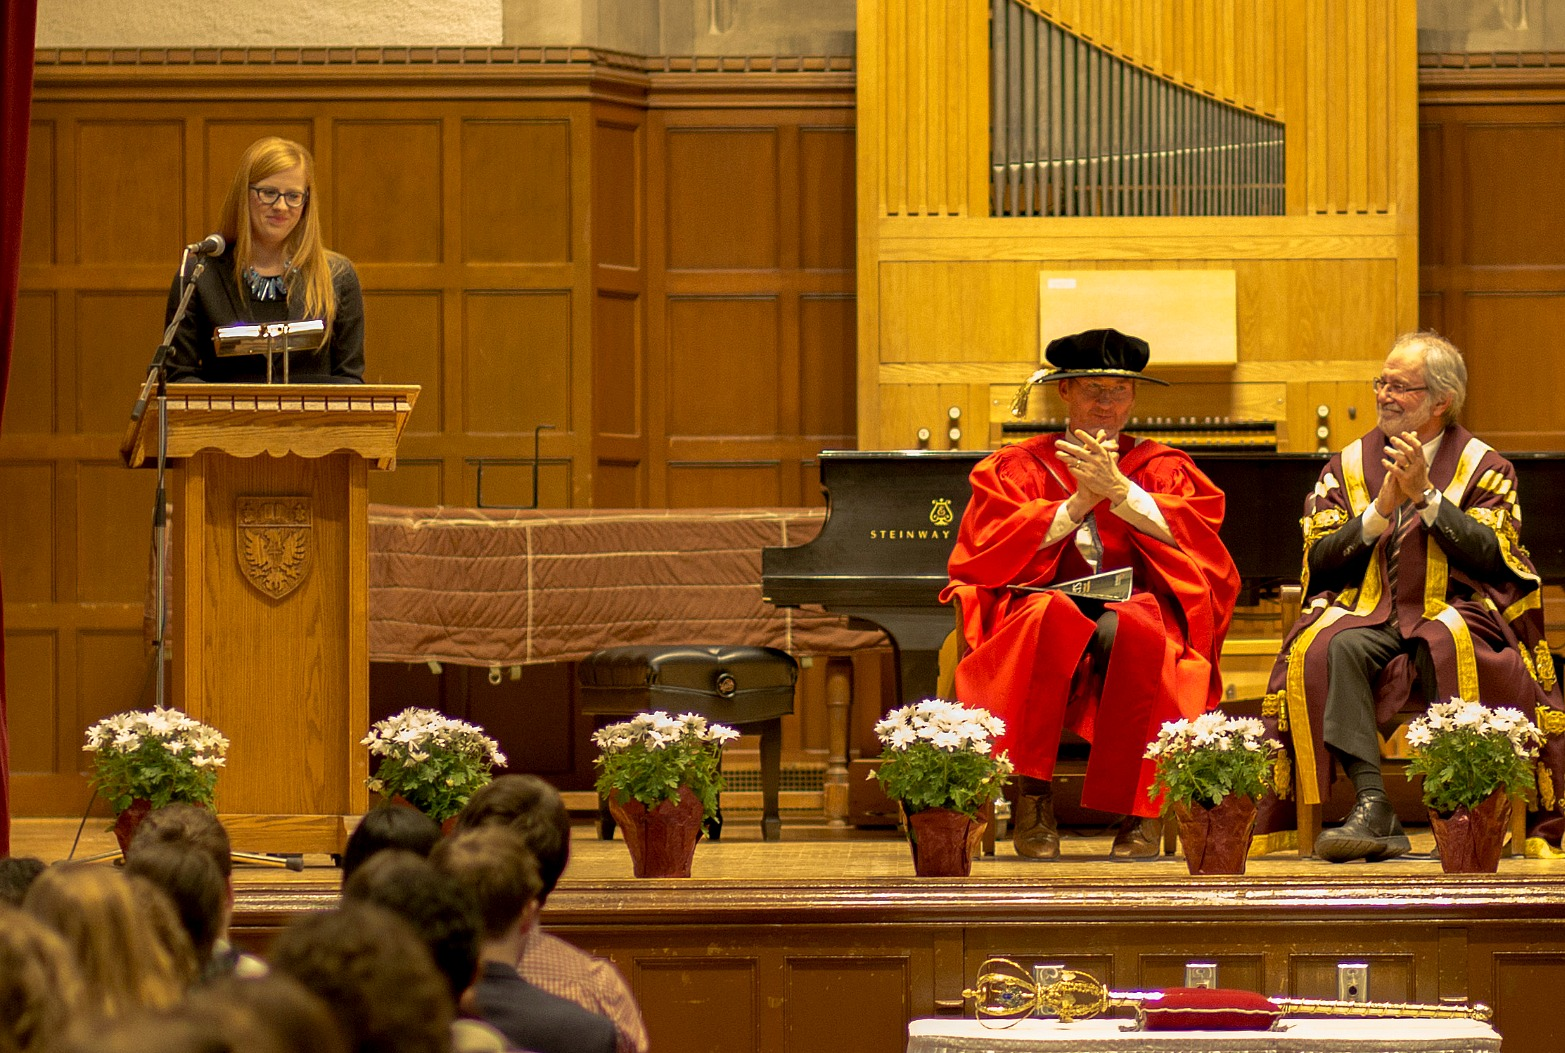 Diana Weir recently spoke to students at the Faculty of Humanities 36th Annual Award Assembly, held in Convocation Hall.